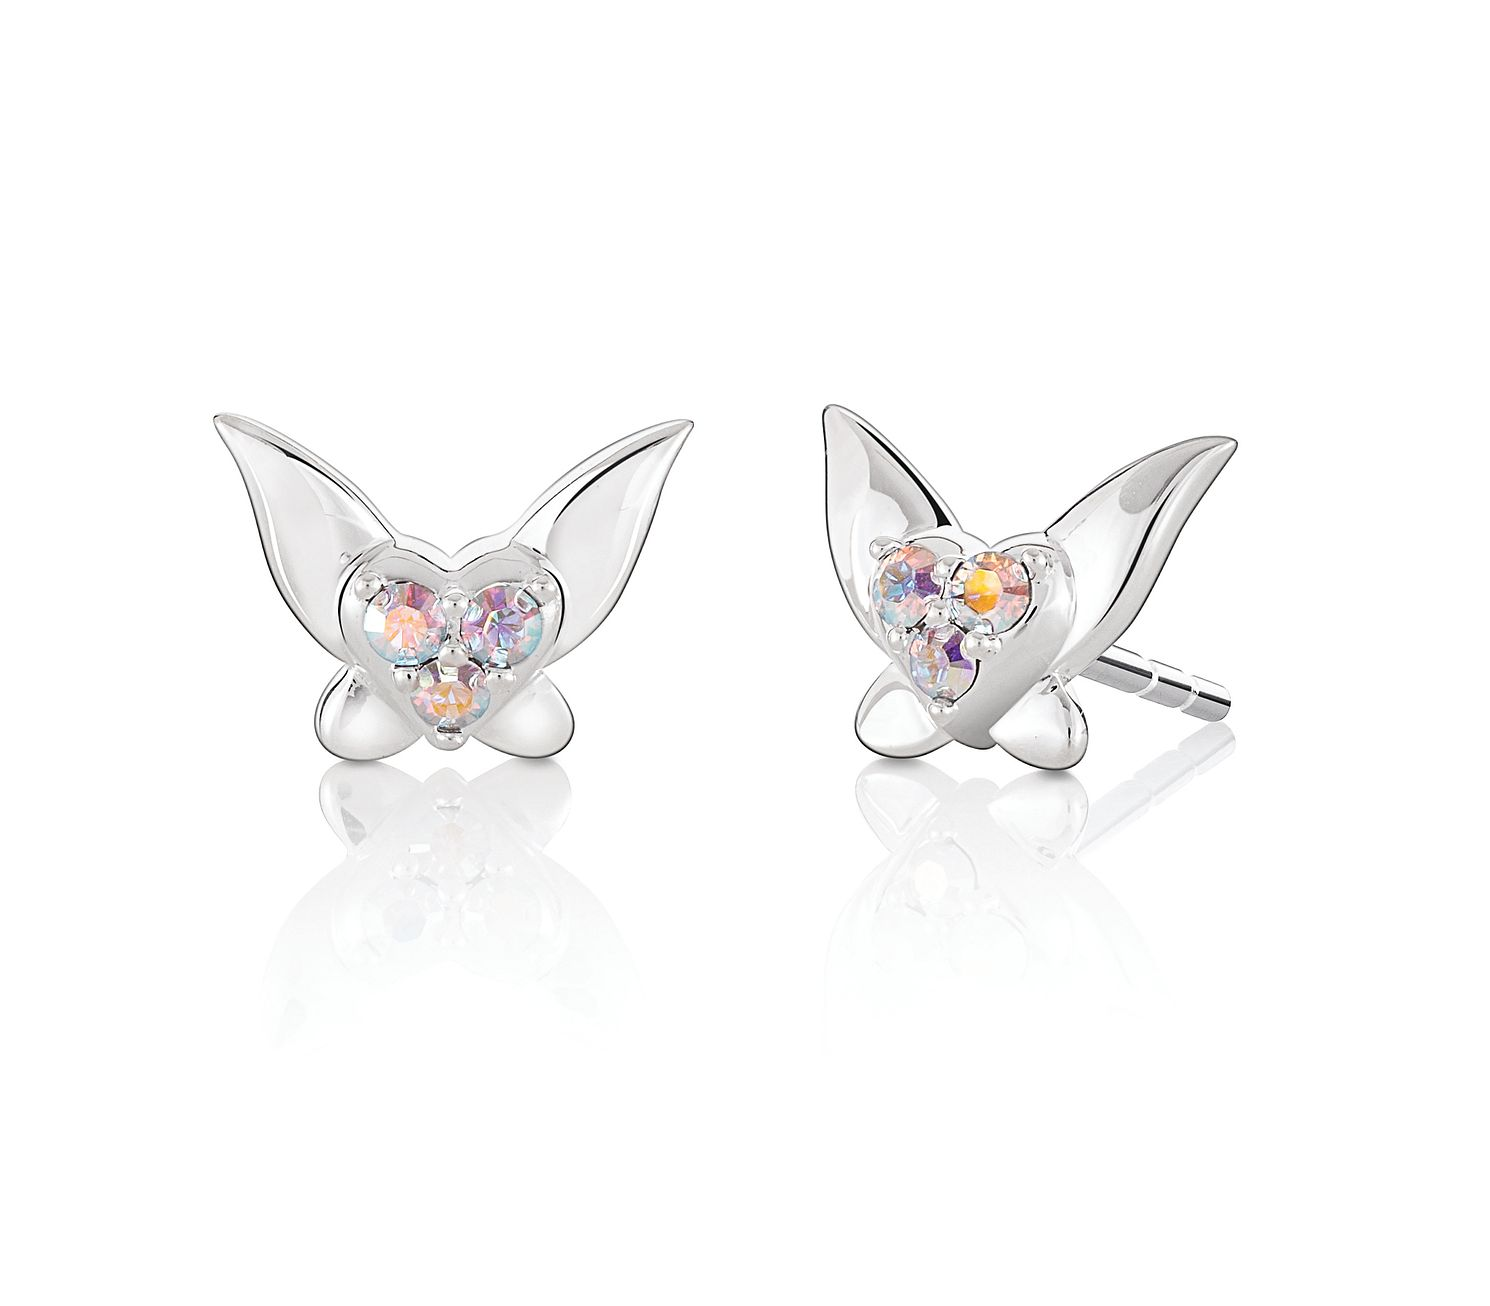 Chamilia Disney Tinkerbell Swarovski Crystal Stud Earrings - Product number 2241927